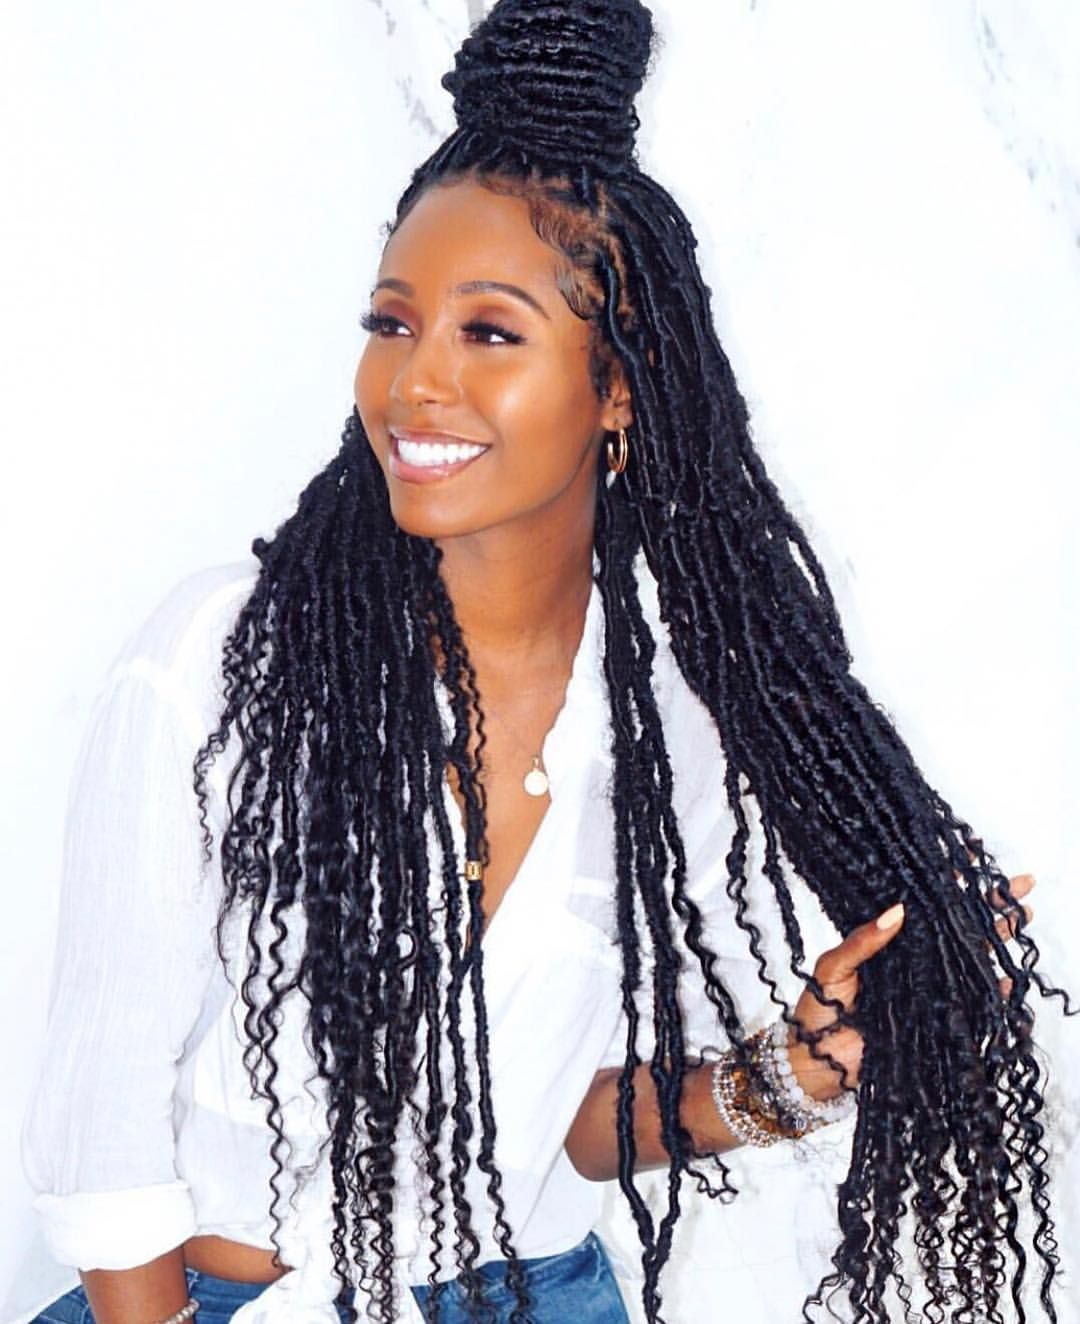 Protective Style'n On Em???????? #hairinspo #goddesslocs . Locs styled by @shaymonaiartistry . #amistichaircare #underhaircare #protectivestyles… #protectivestyles